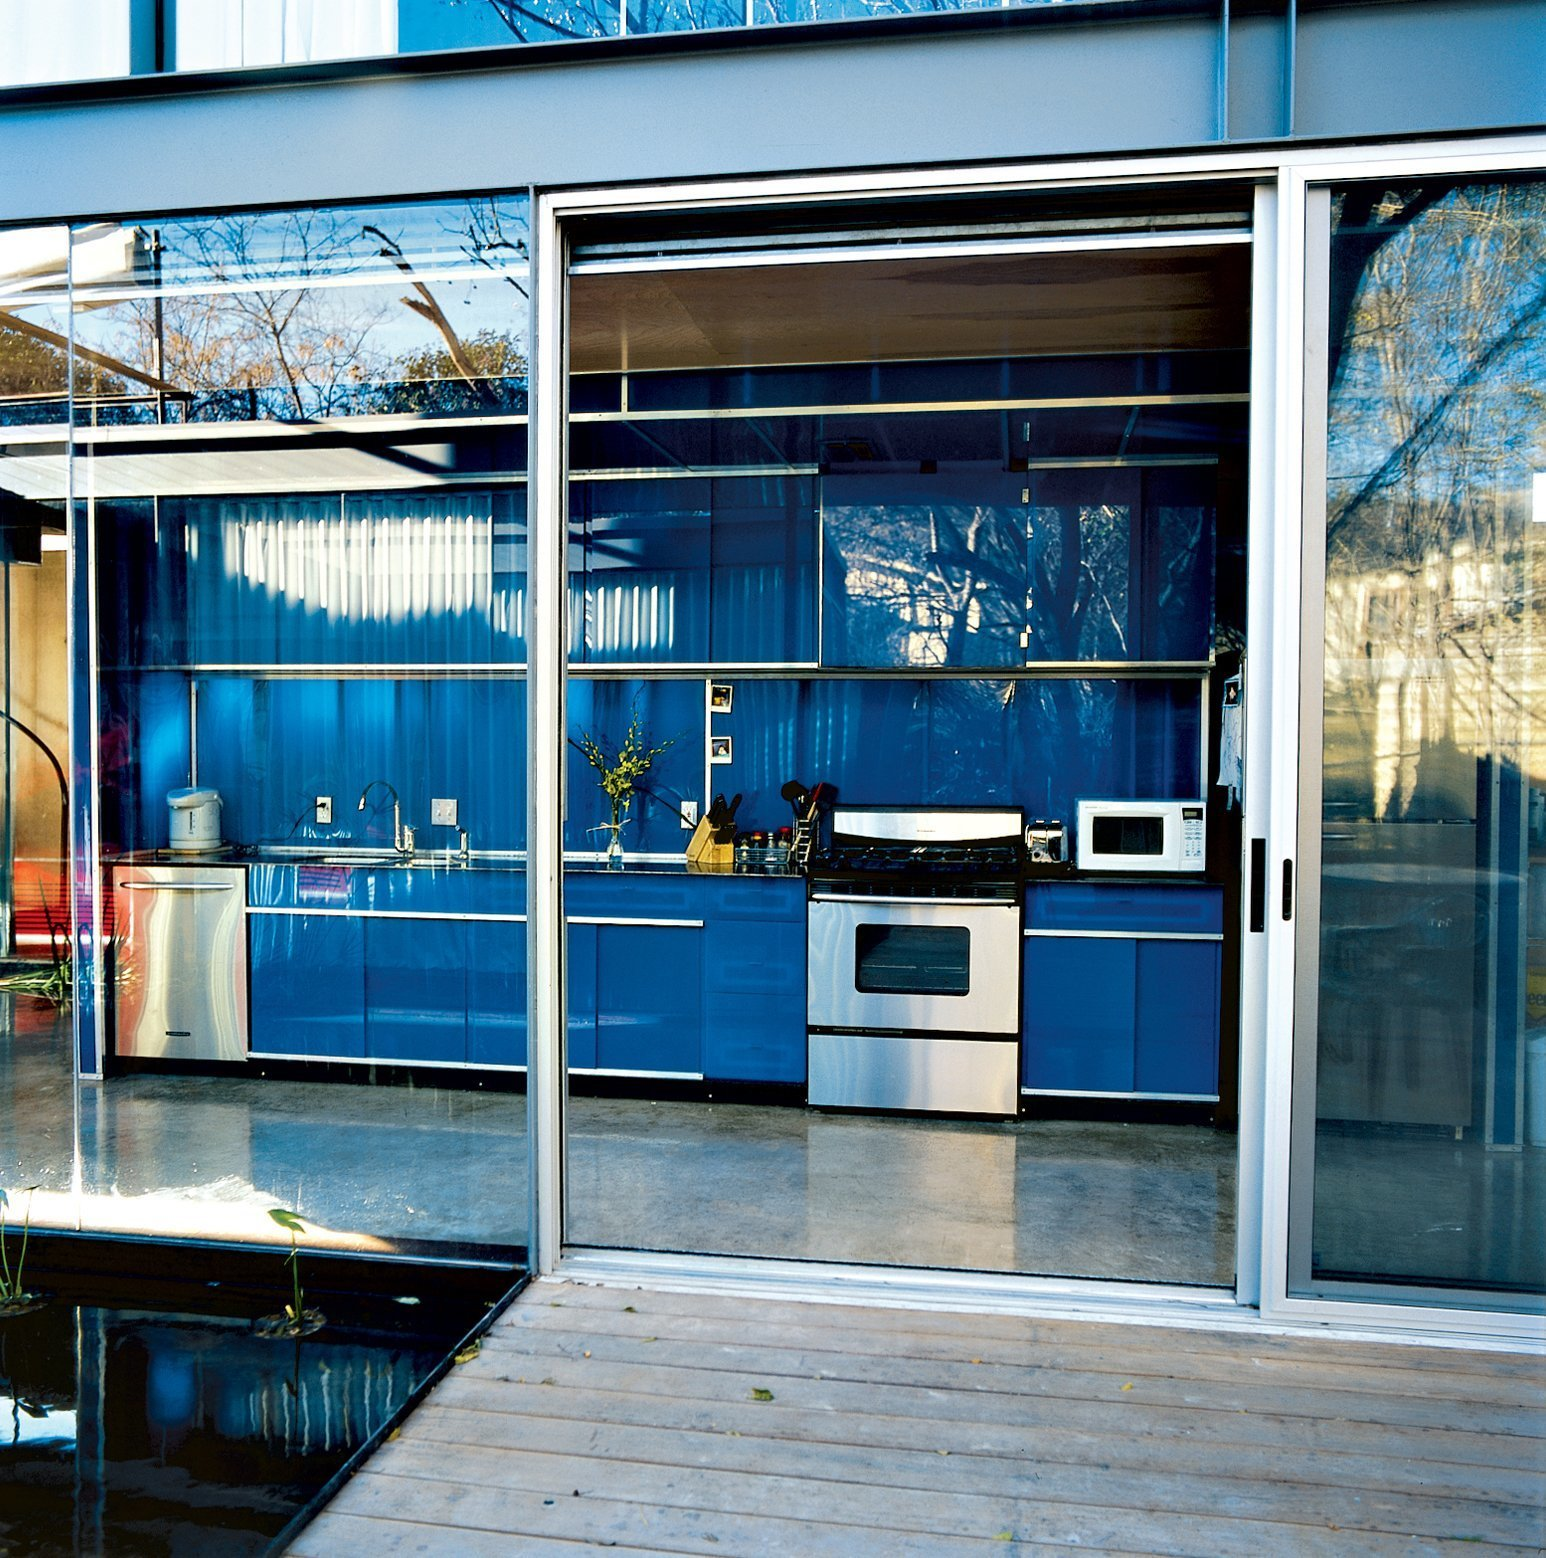 Kitchen, Range, Colorful, Microwave, Dishwasher, Wall Oven, and Concrete The inaugural project of Bercy Chen Studio, this home in Austin, Texas has a cobalt blue galley-style kitchen that is free from visible knobs and hinges.  Best Kitchen Concrete Colorful Photos